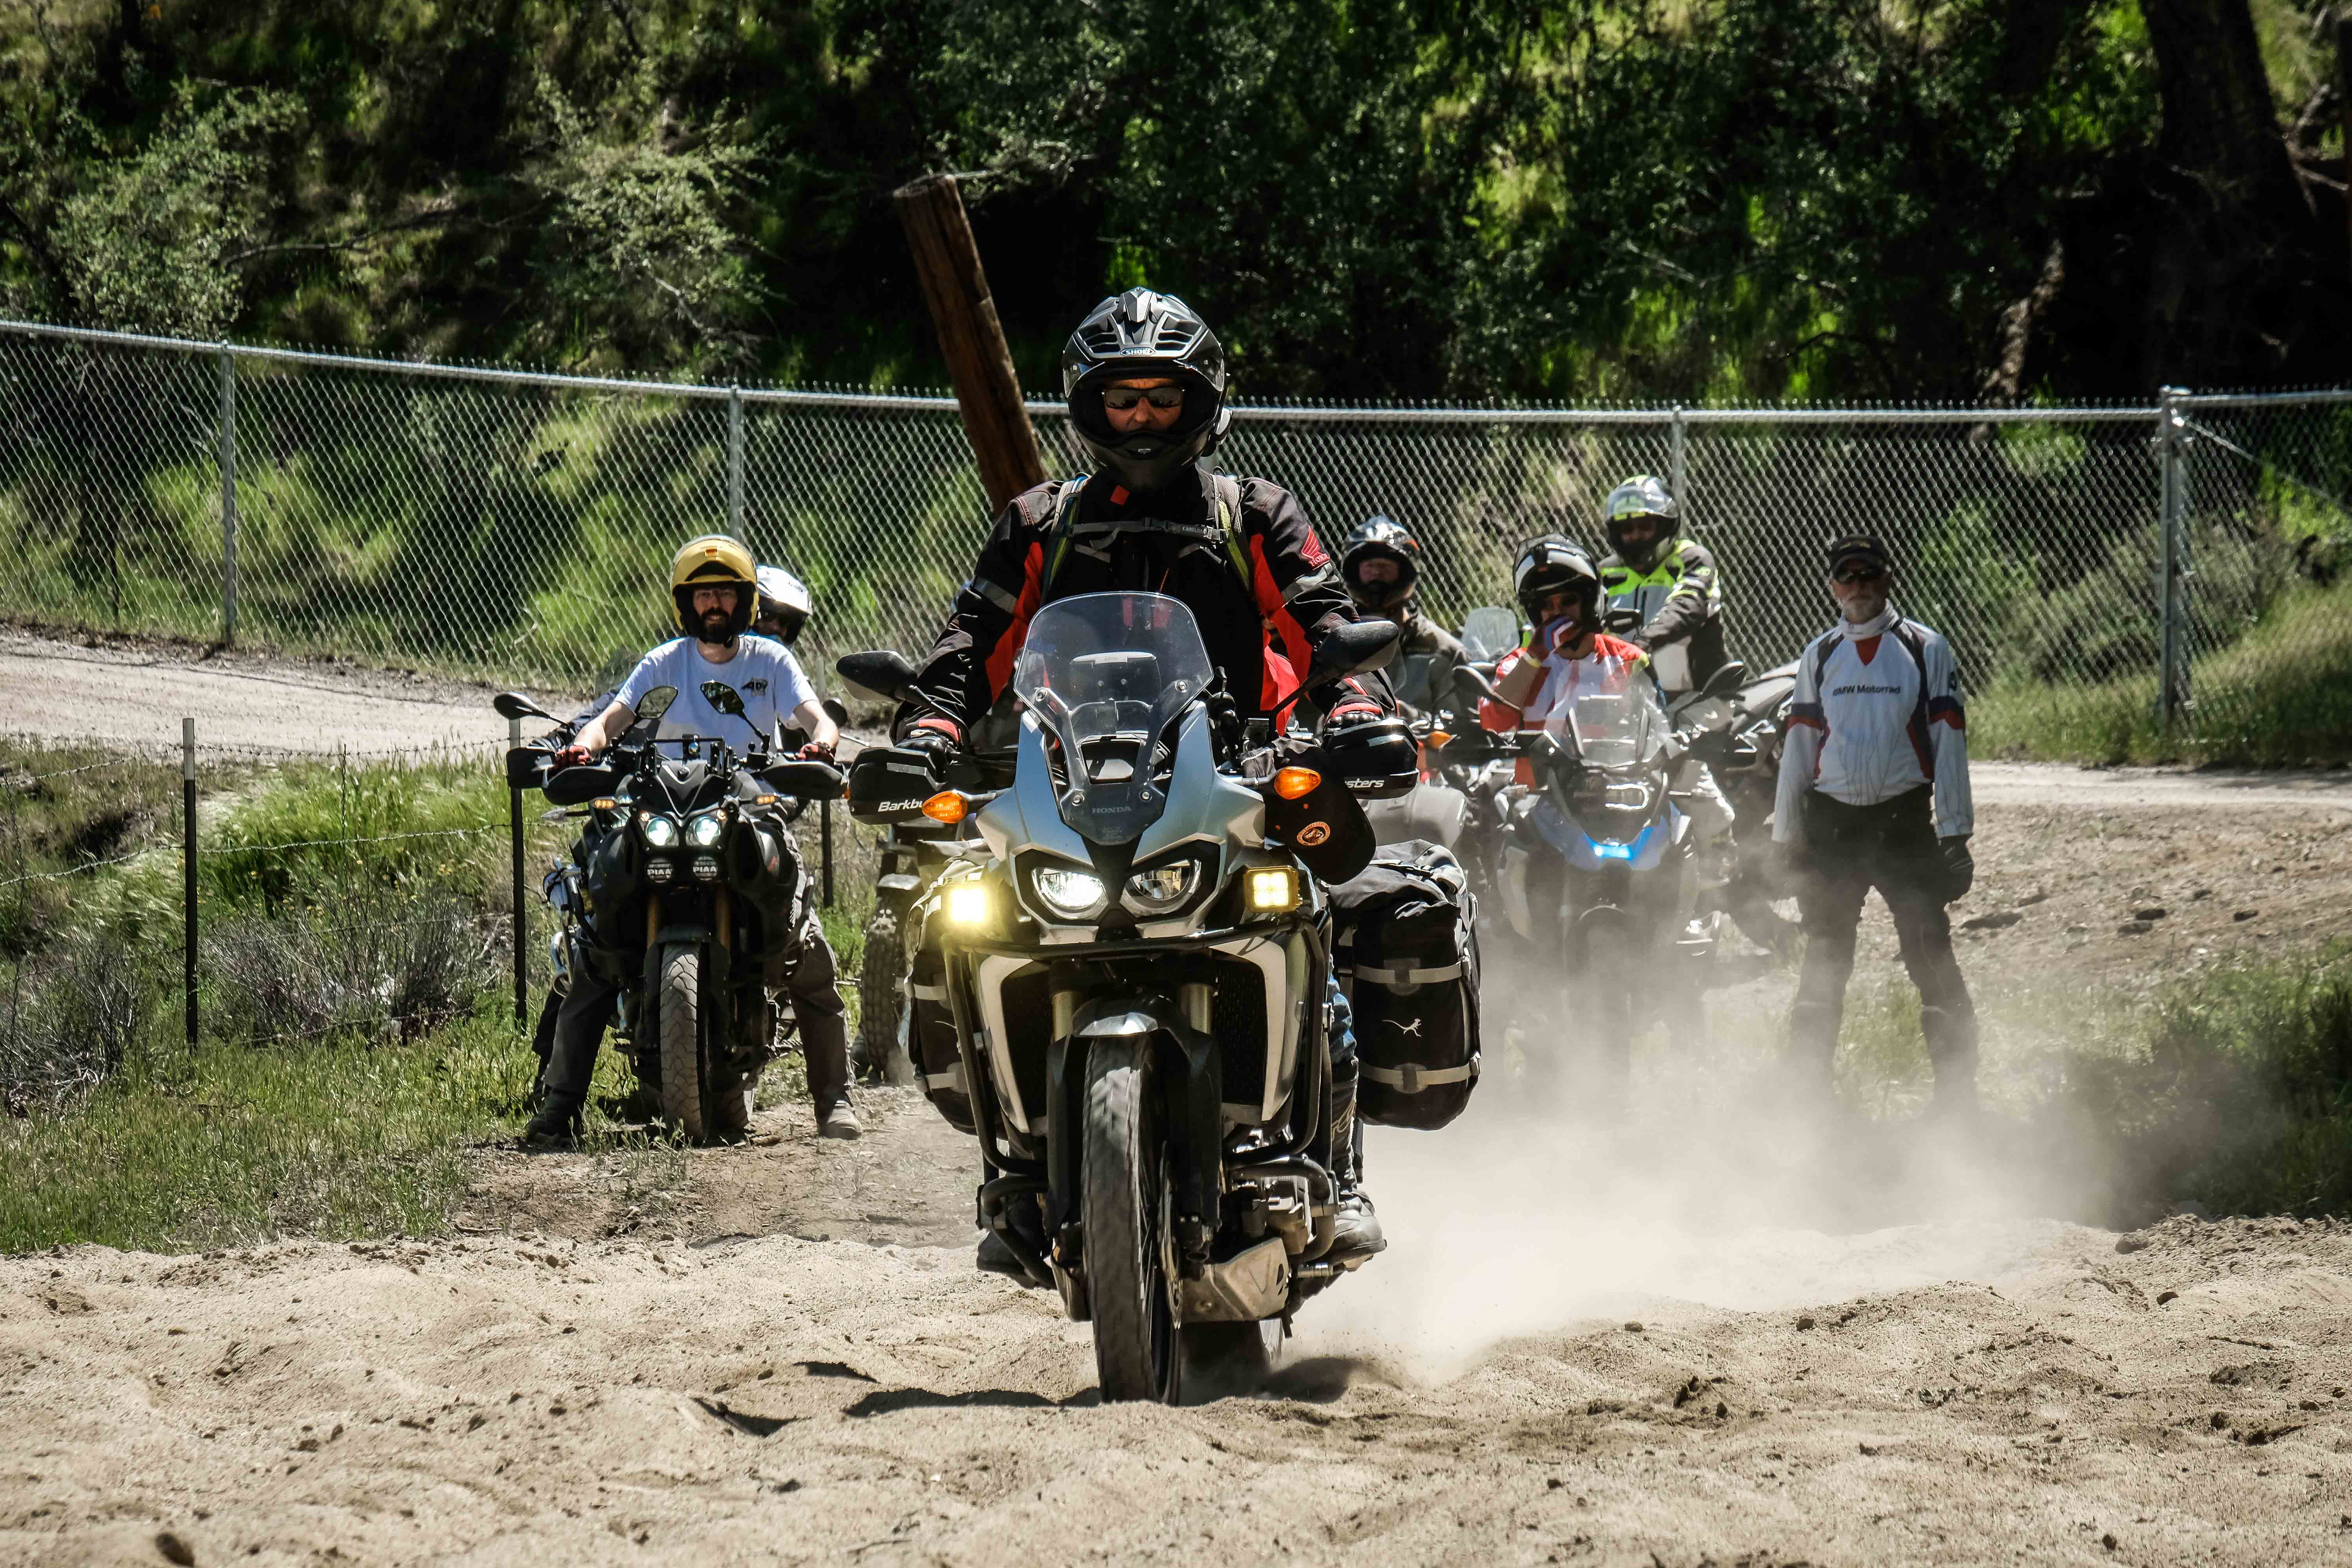 A student takes their Honda Africa Twin through the sand wash.